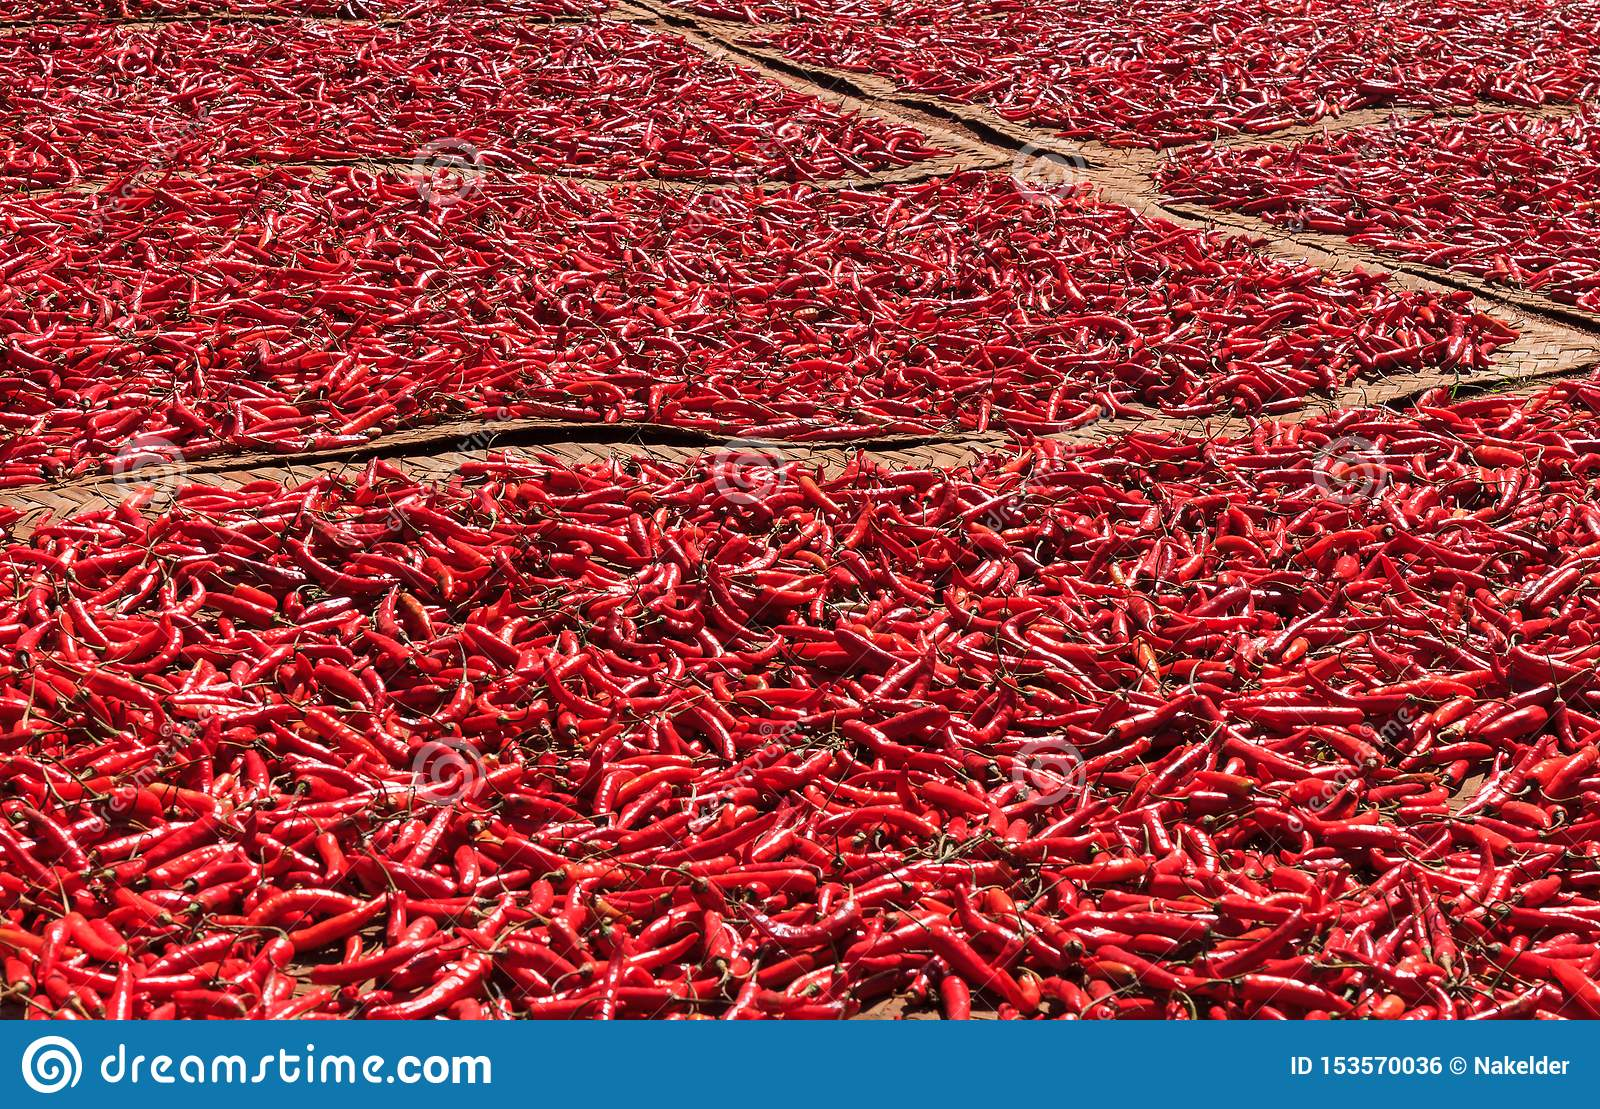 Red chilli peppers drying in the sun